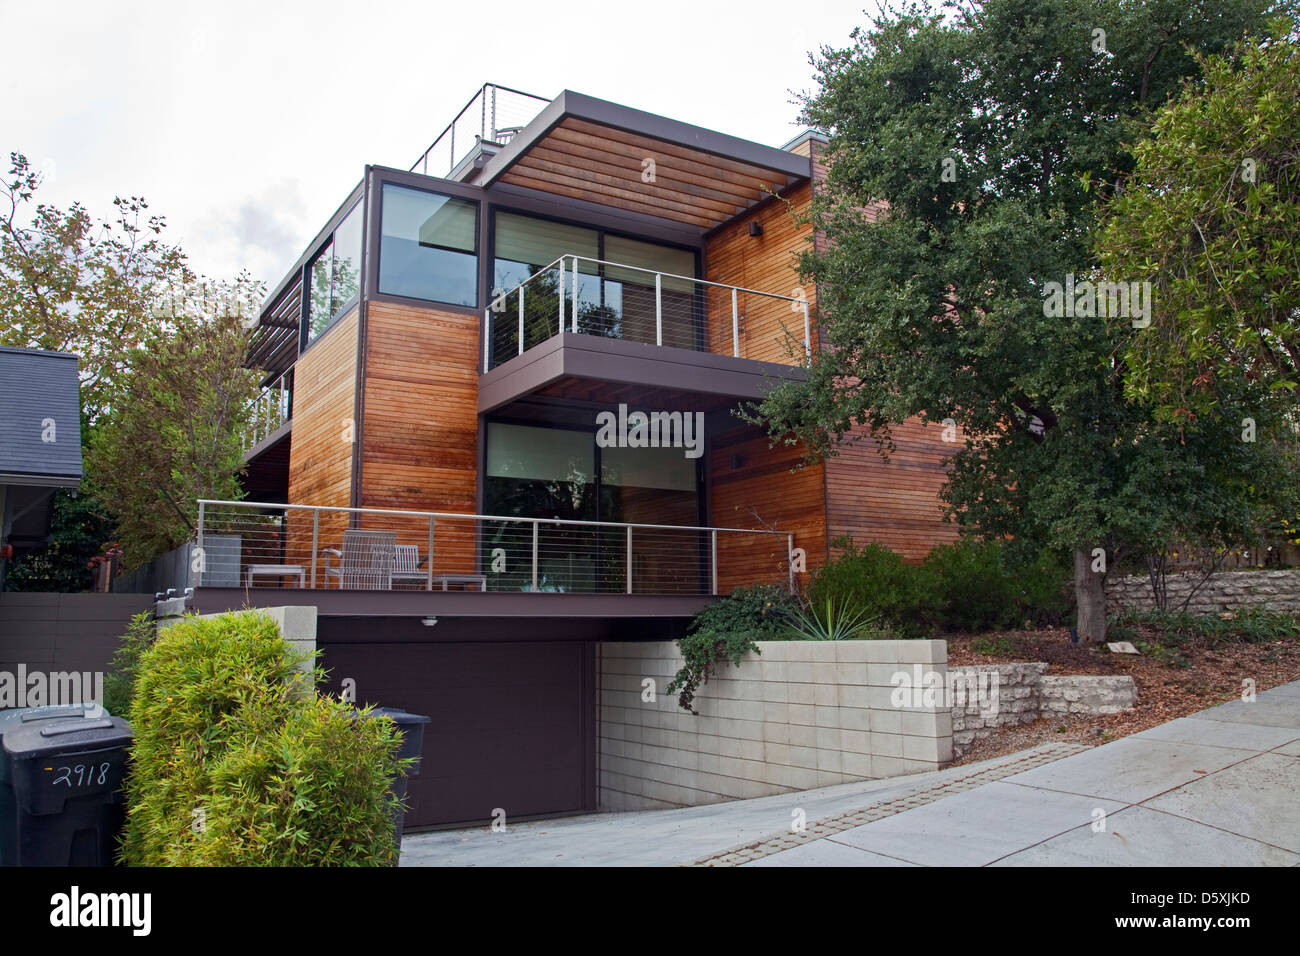 Lovely A Multi Level, Prefab, Modular Green Home By The Company LivingHomes And  Consists Of 11 Modular Sections. Santa Monica, CA